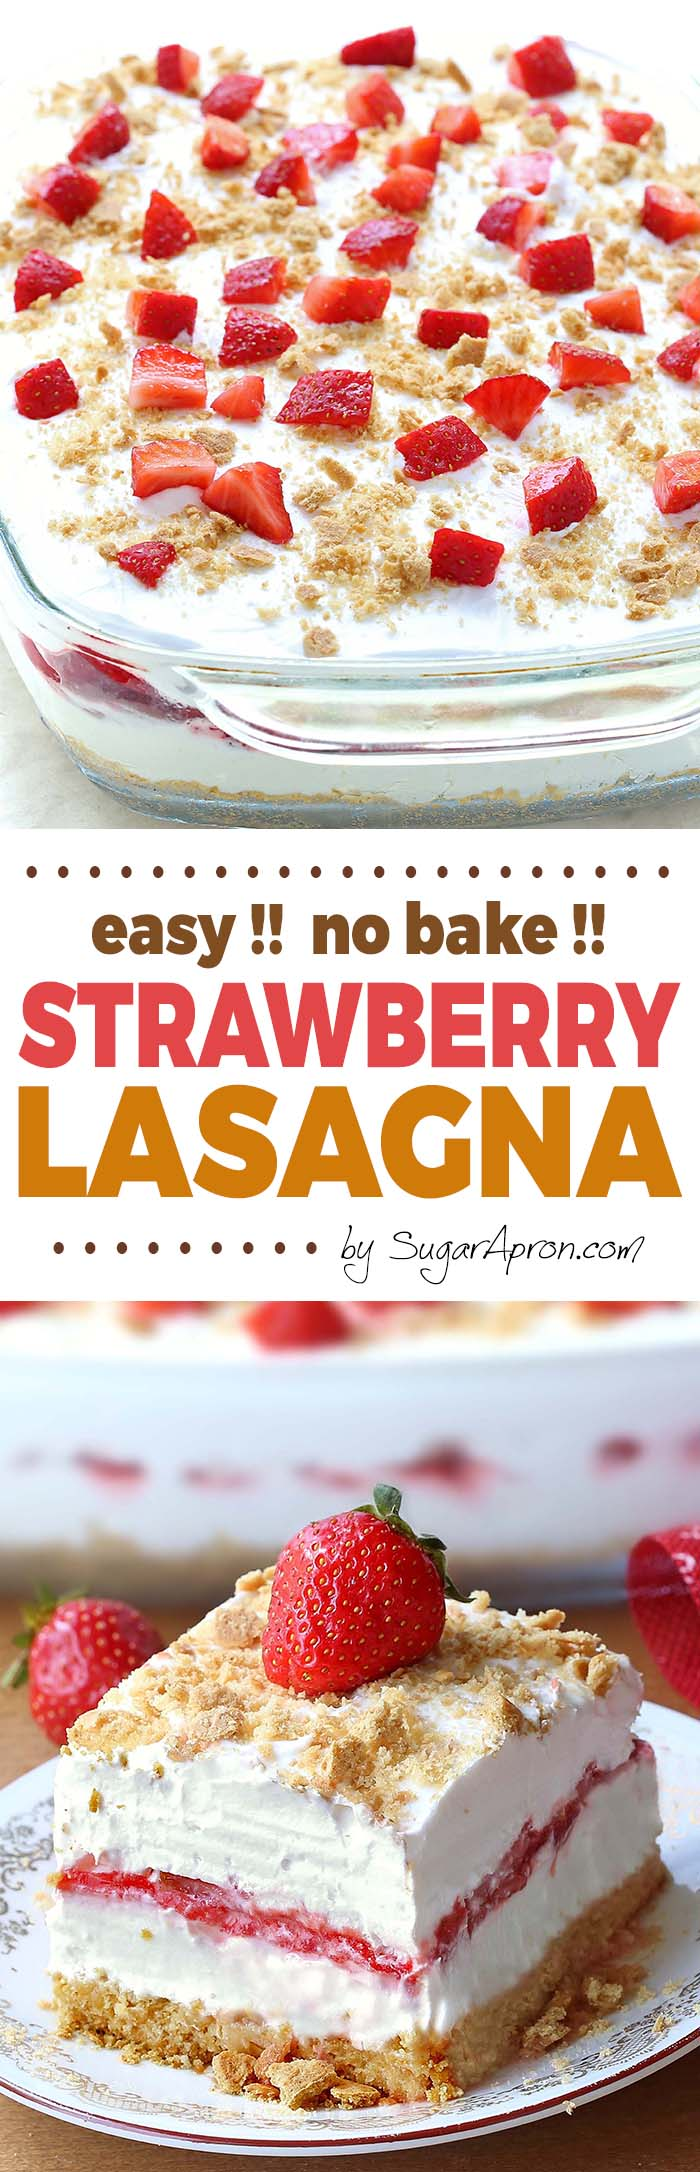 No Bake Strawberry Cheesecake Lasagna No Bake Strawberry Cheesecake Lasagna -a dessert lasagna with graham cracker crust, cream cheese filling, strawberries and cream topping, will make all Your Strawberries and Cream dreams come true. This is your ticket to becoming a backyard-barbecue legend, perfect for 4th of July or any other family get-togethers.